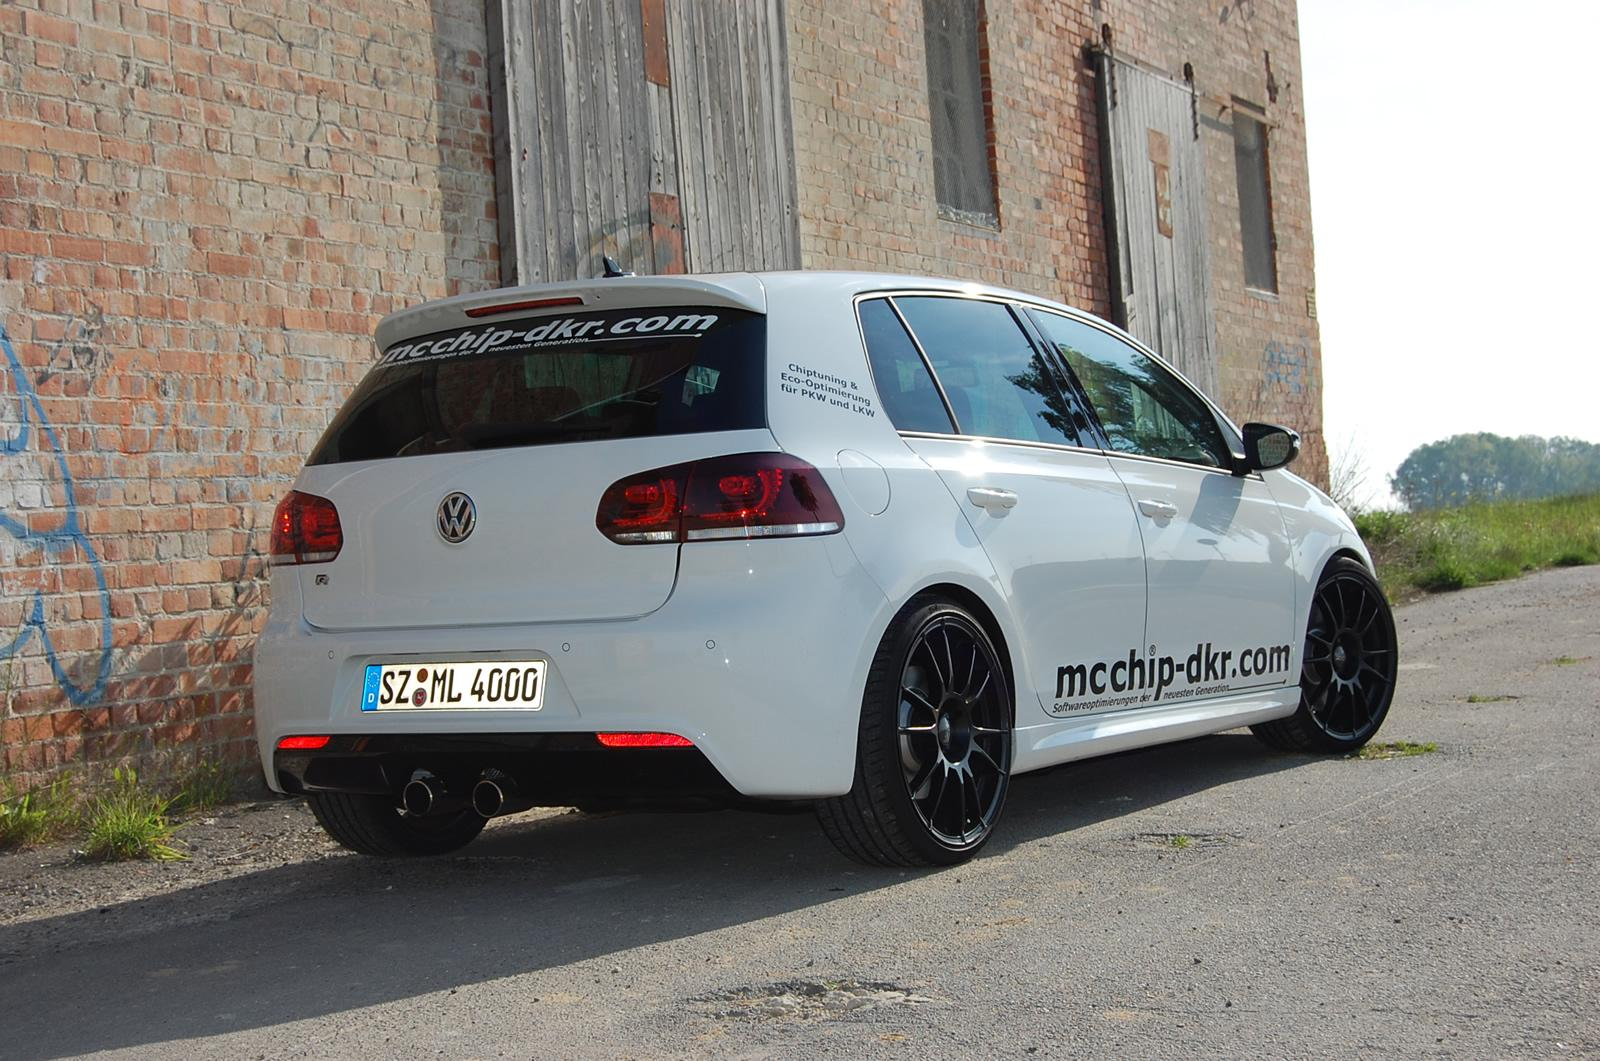 vw golf 5 mcchip 8 vw tuning mag. Black Bedroom Furniture Sets. Home Design Ideas